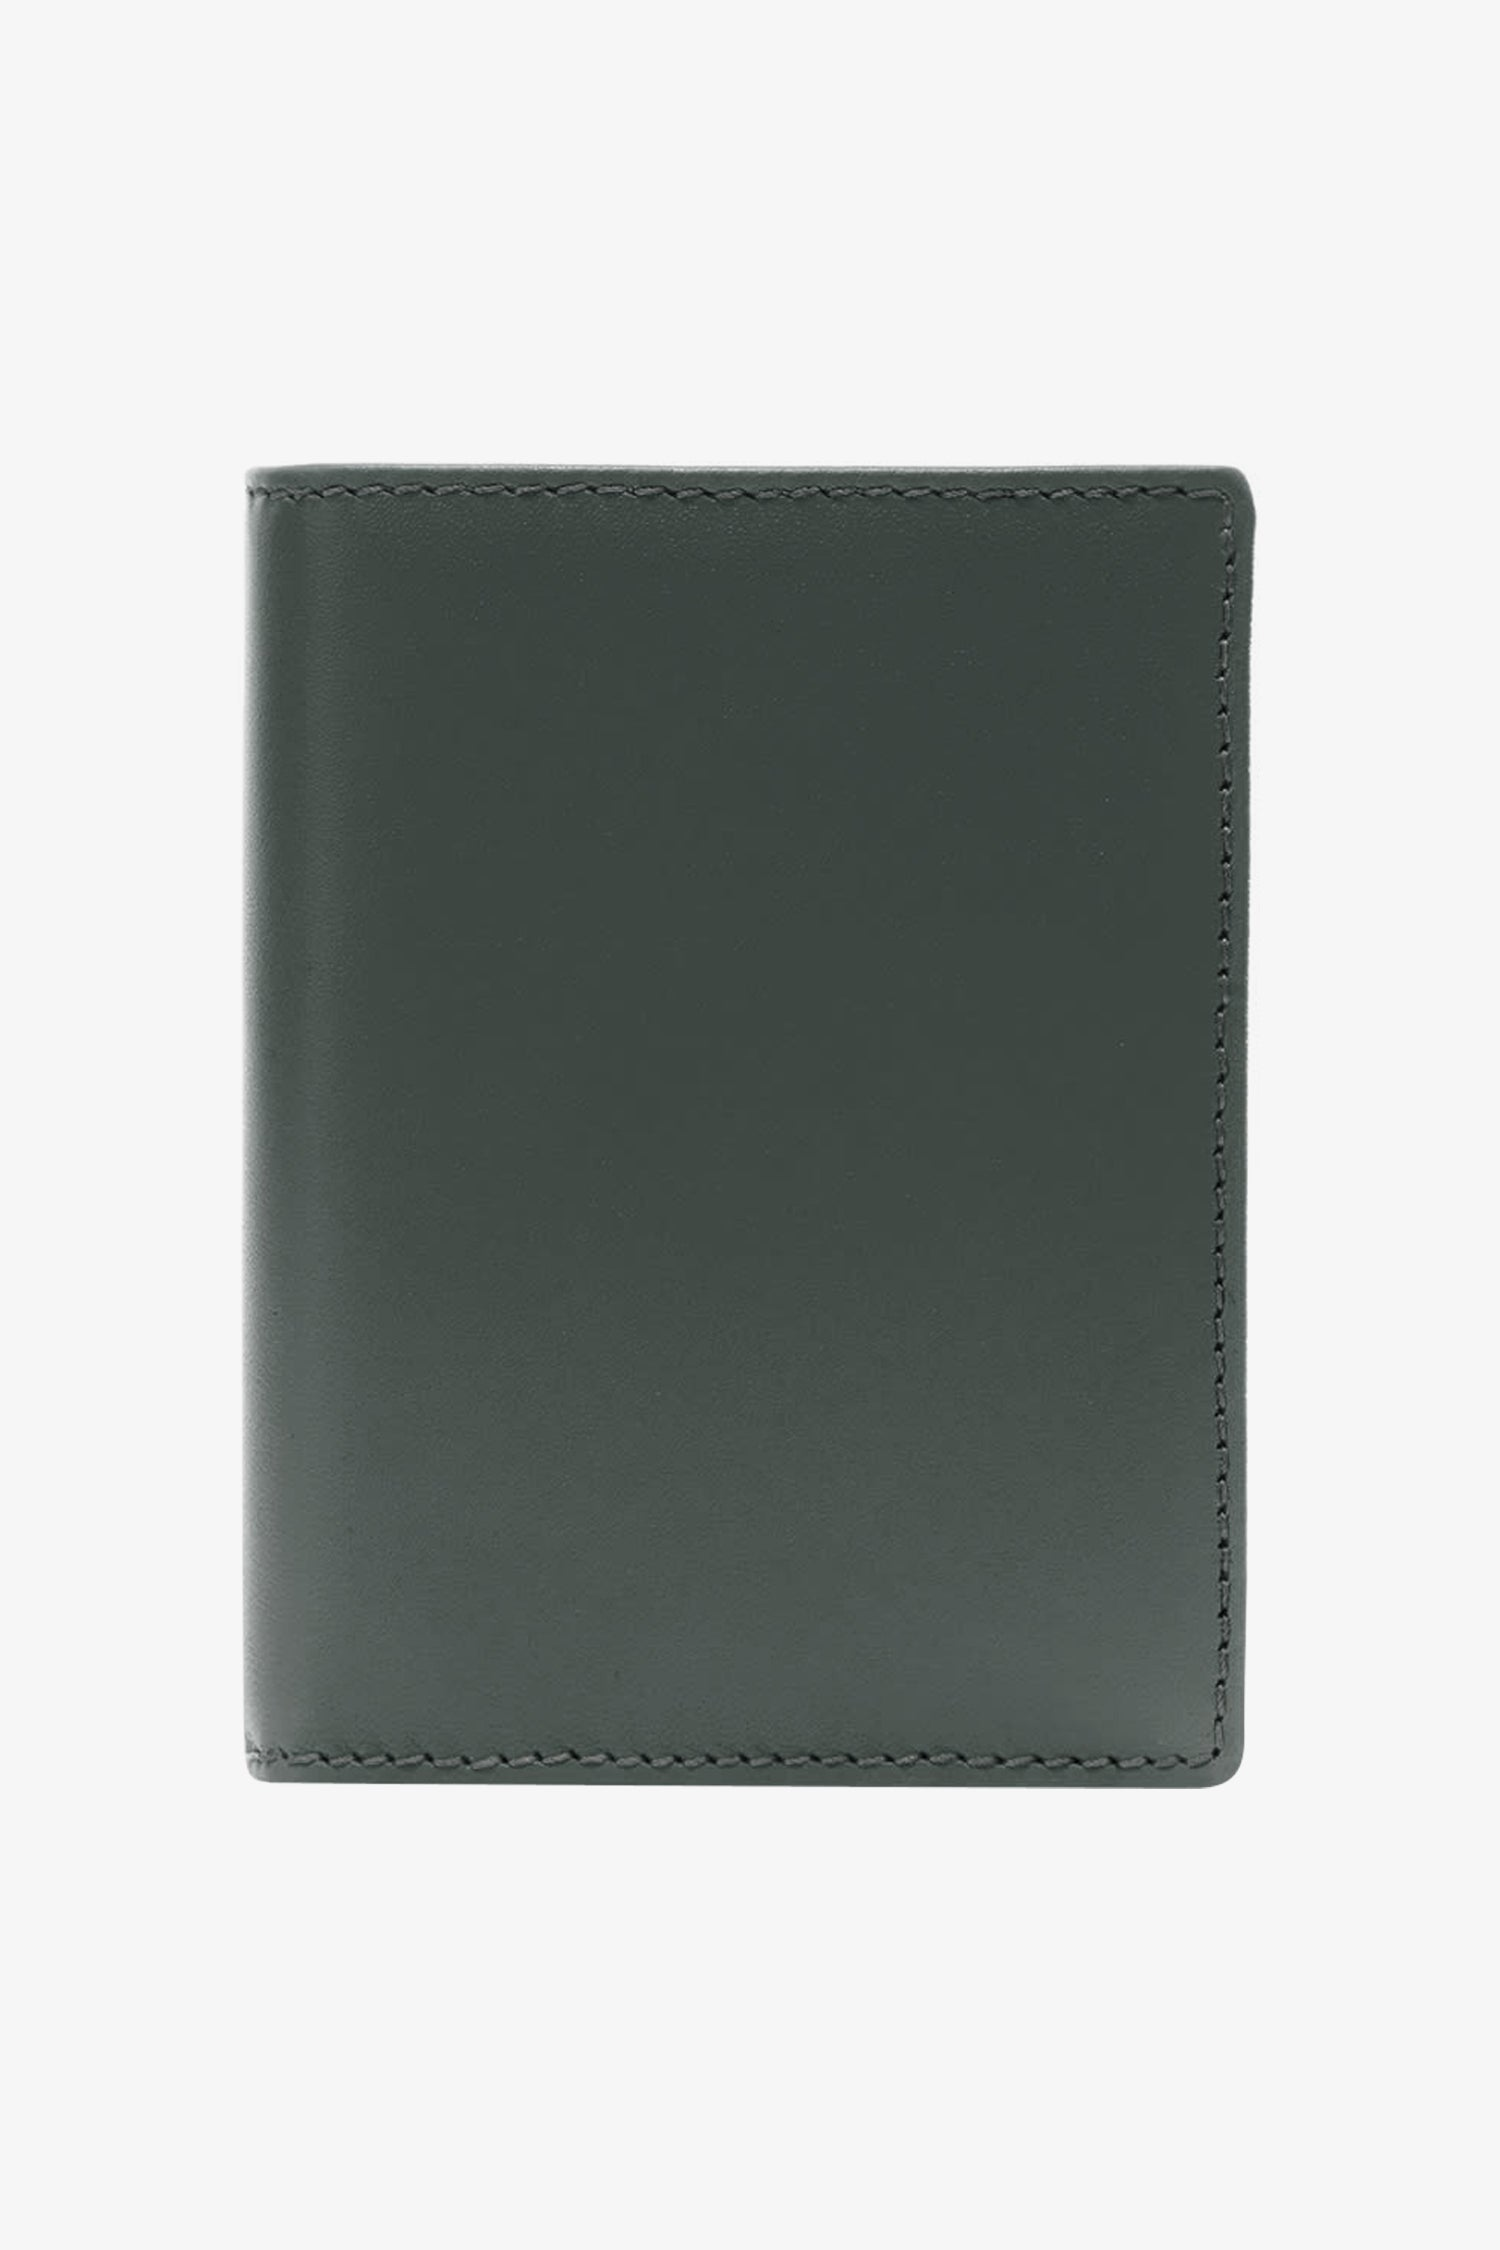 Classic Group Wallet (SA0641)